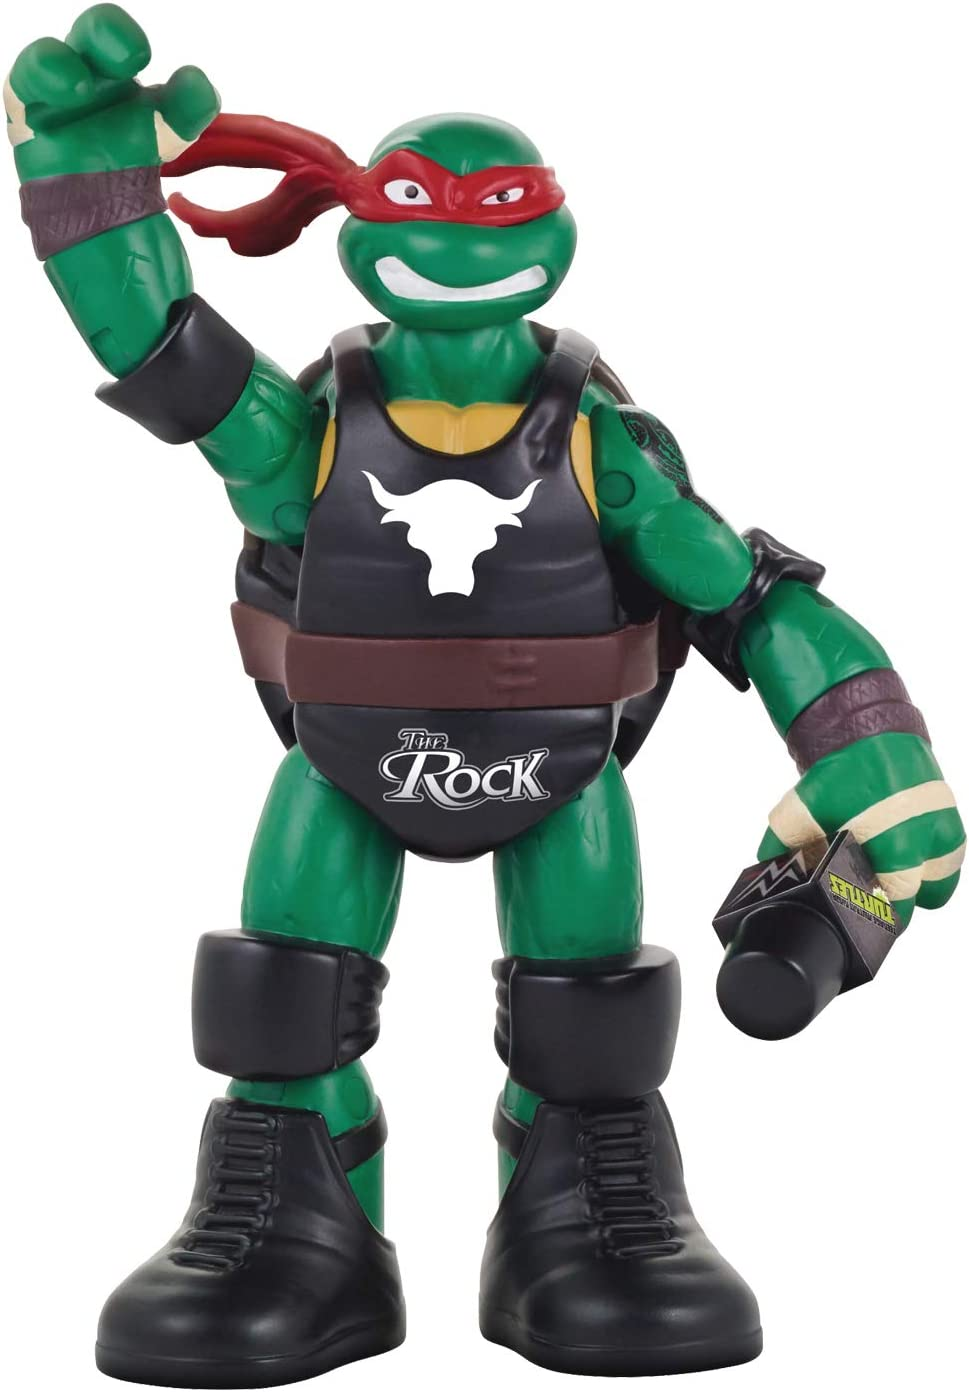 Teenage Mutant Ninja Turtles Ninja Super Stars: Raph as The Rock Figure